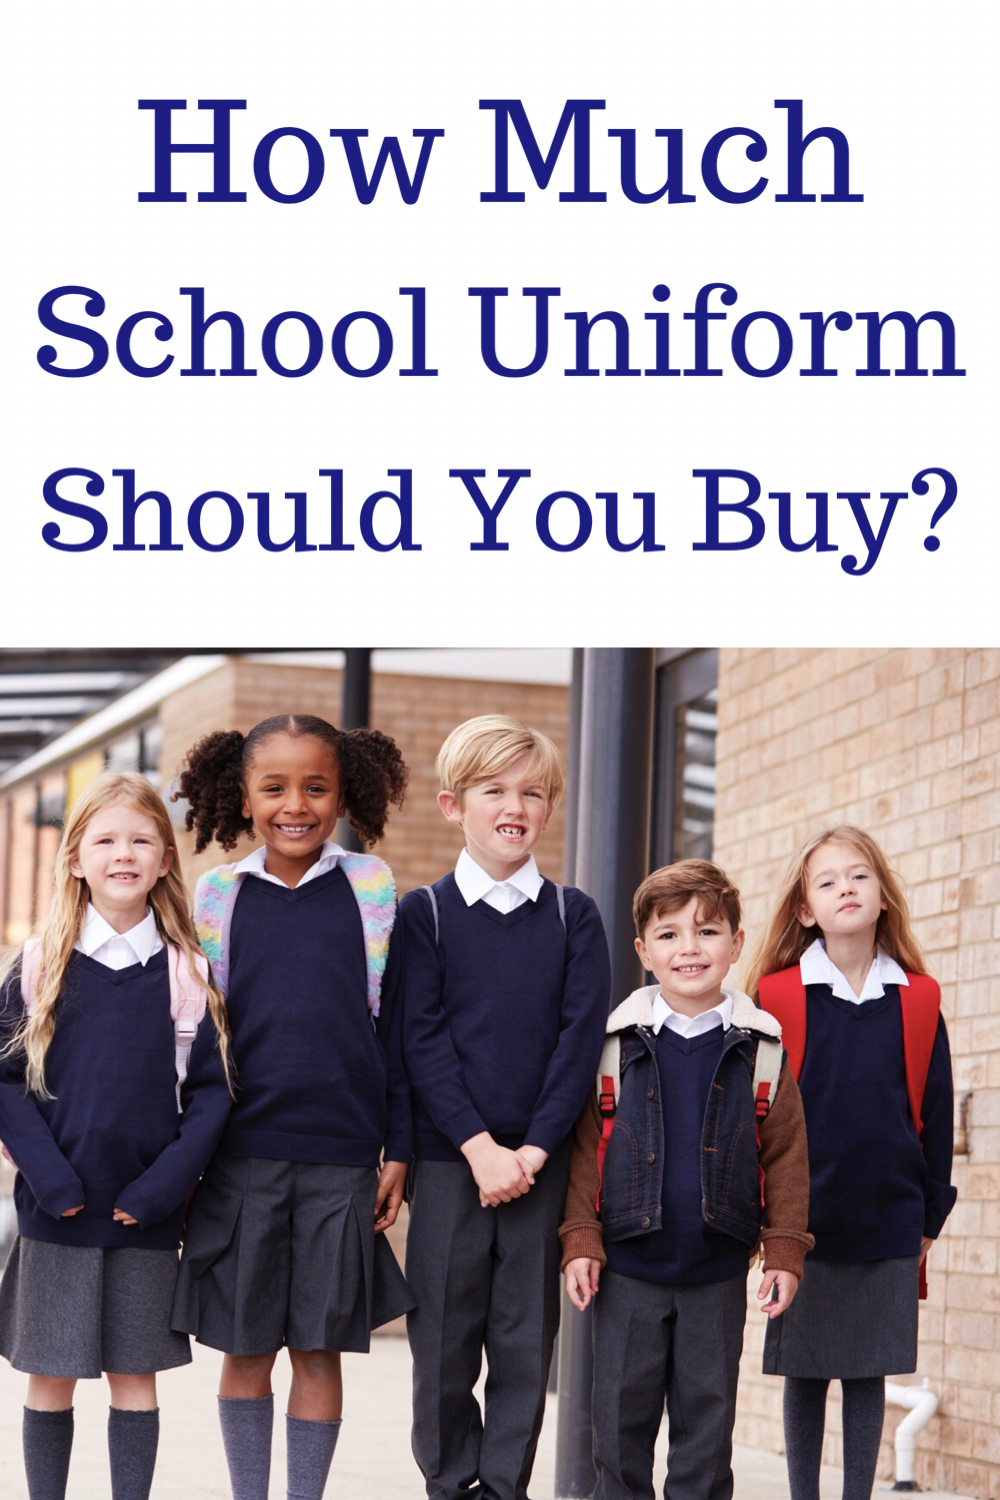 How much school uniform should you buy?